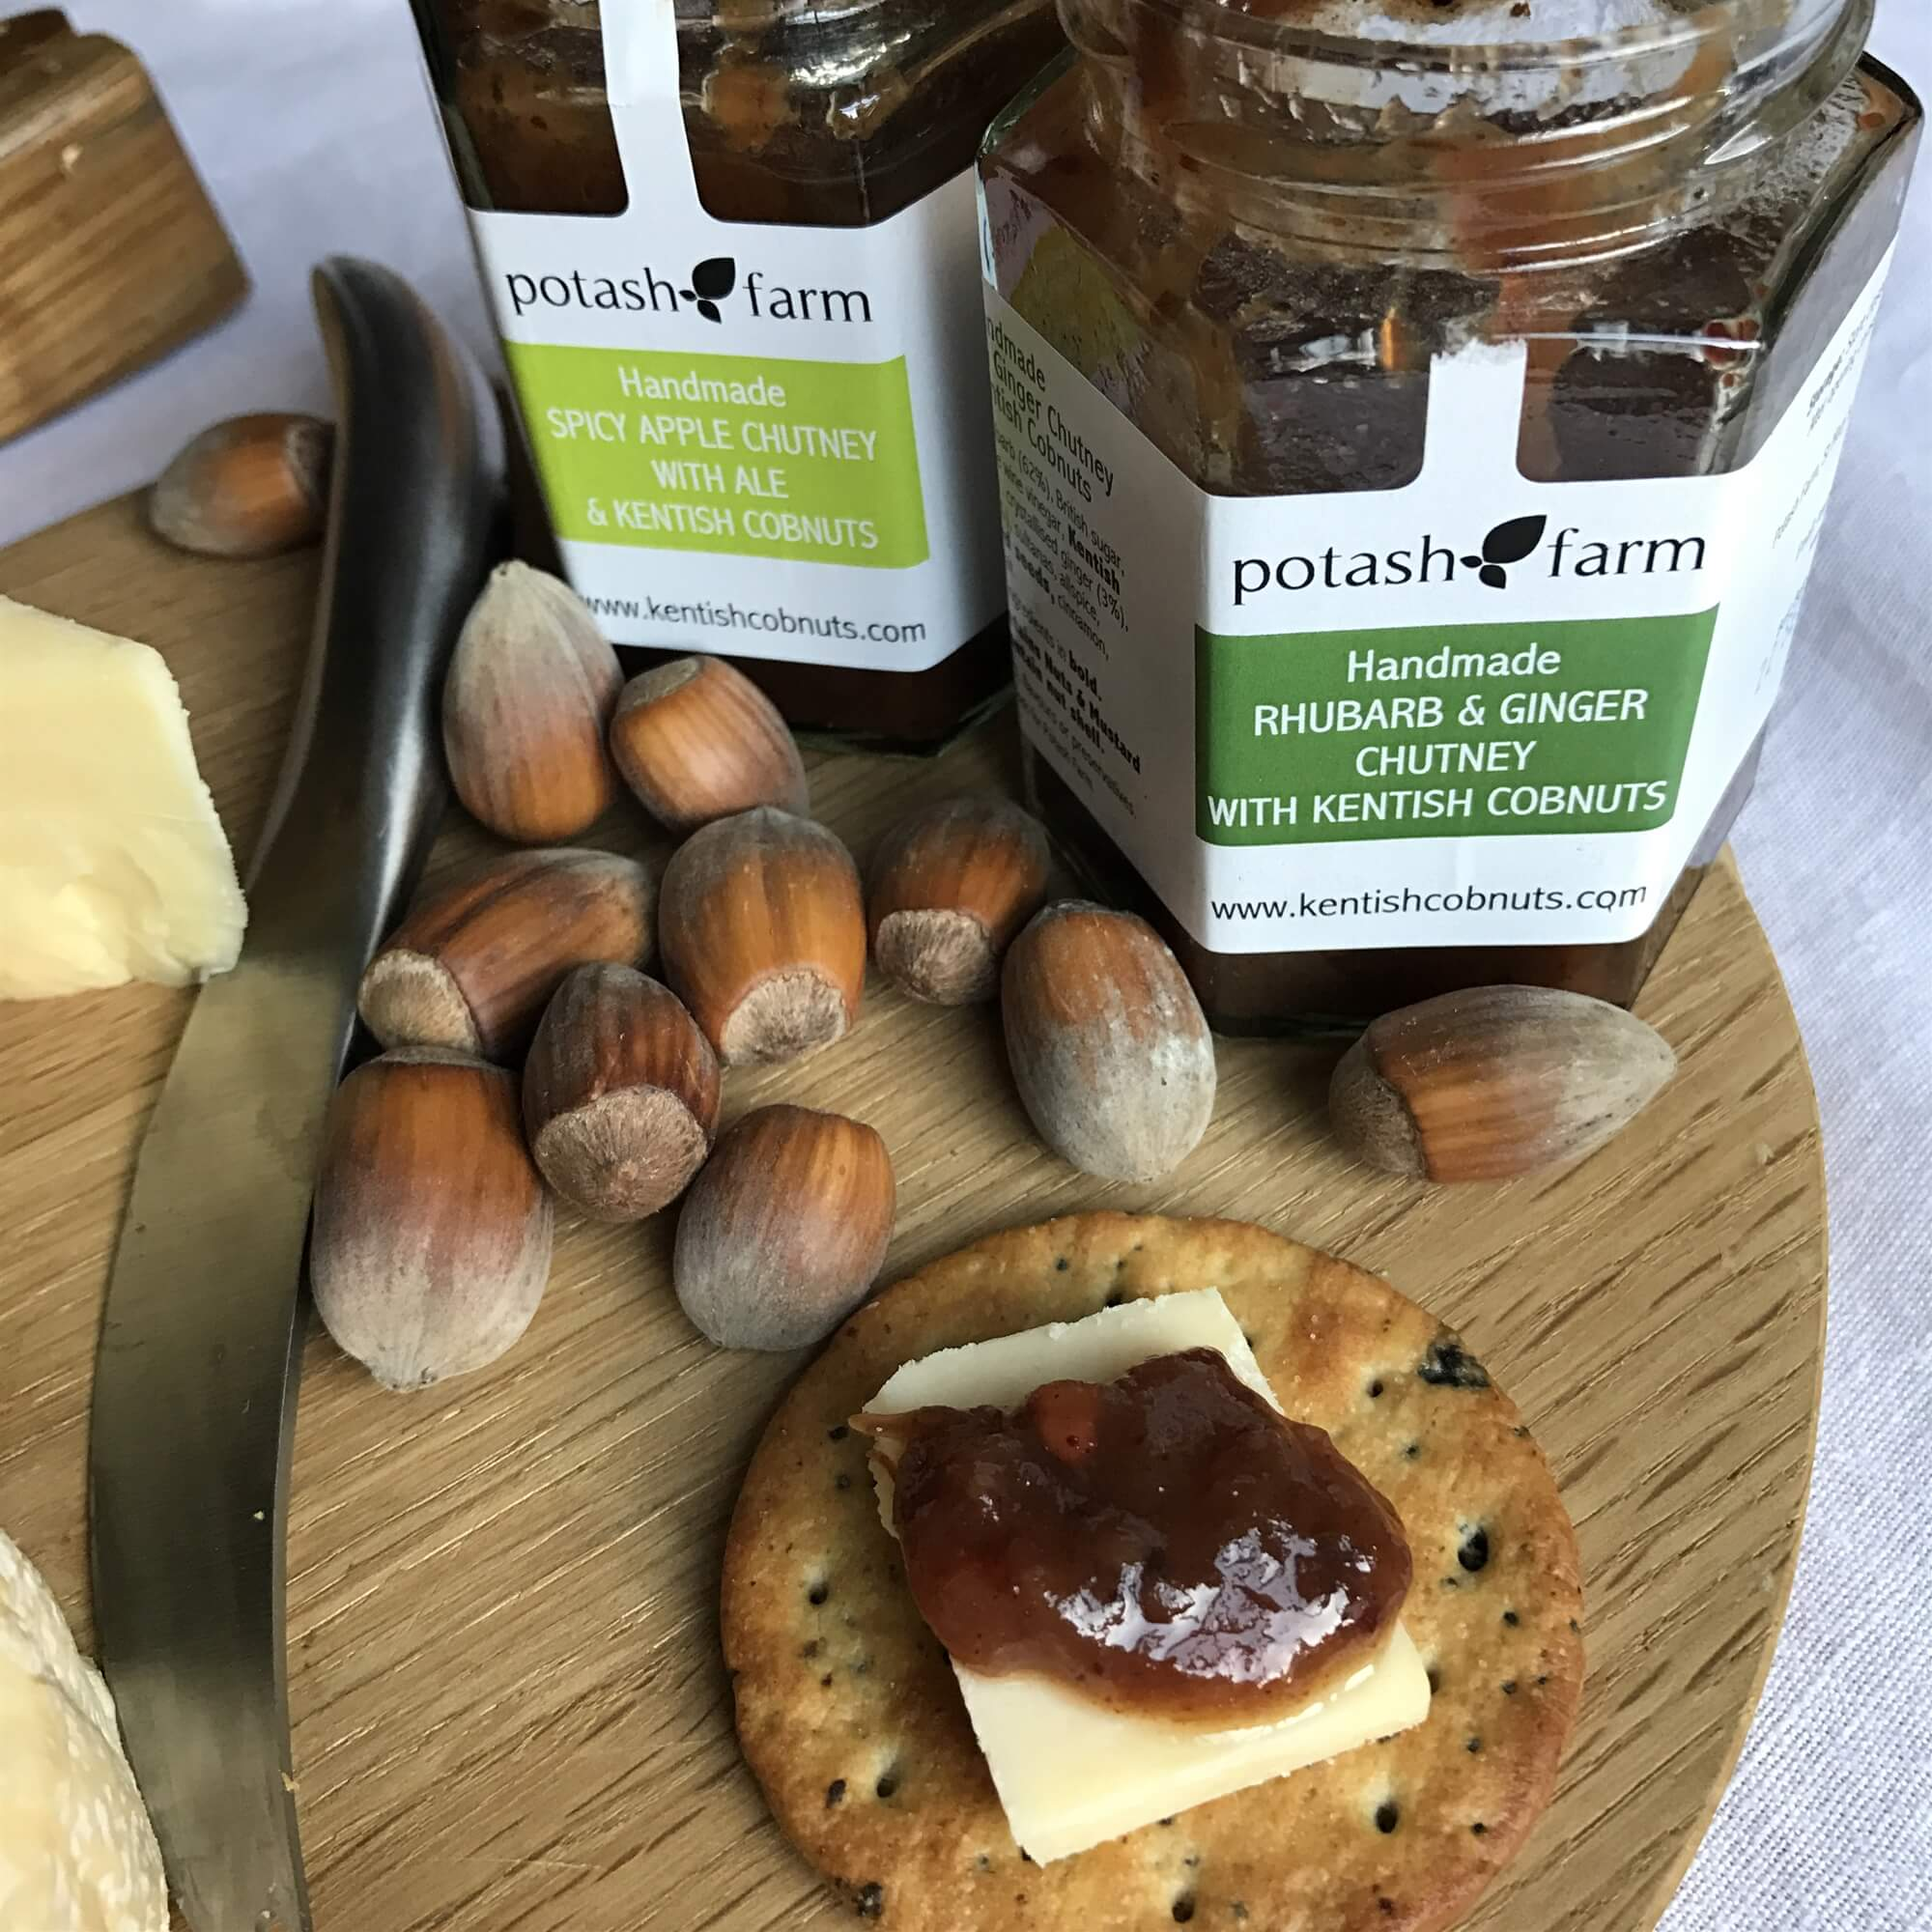 """Featured in the Telegraph Magazine. - """"The Potash Farm Rhubarb and Ginger Chutney with Kentish Cobnuts. Rich with fruit and slightly crunchy from the Cobnuts. Unlike any chutney I've had."""""""